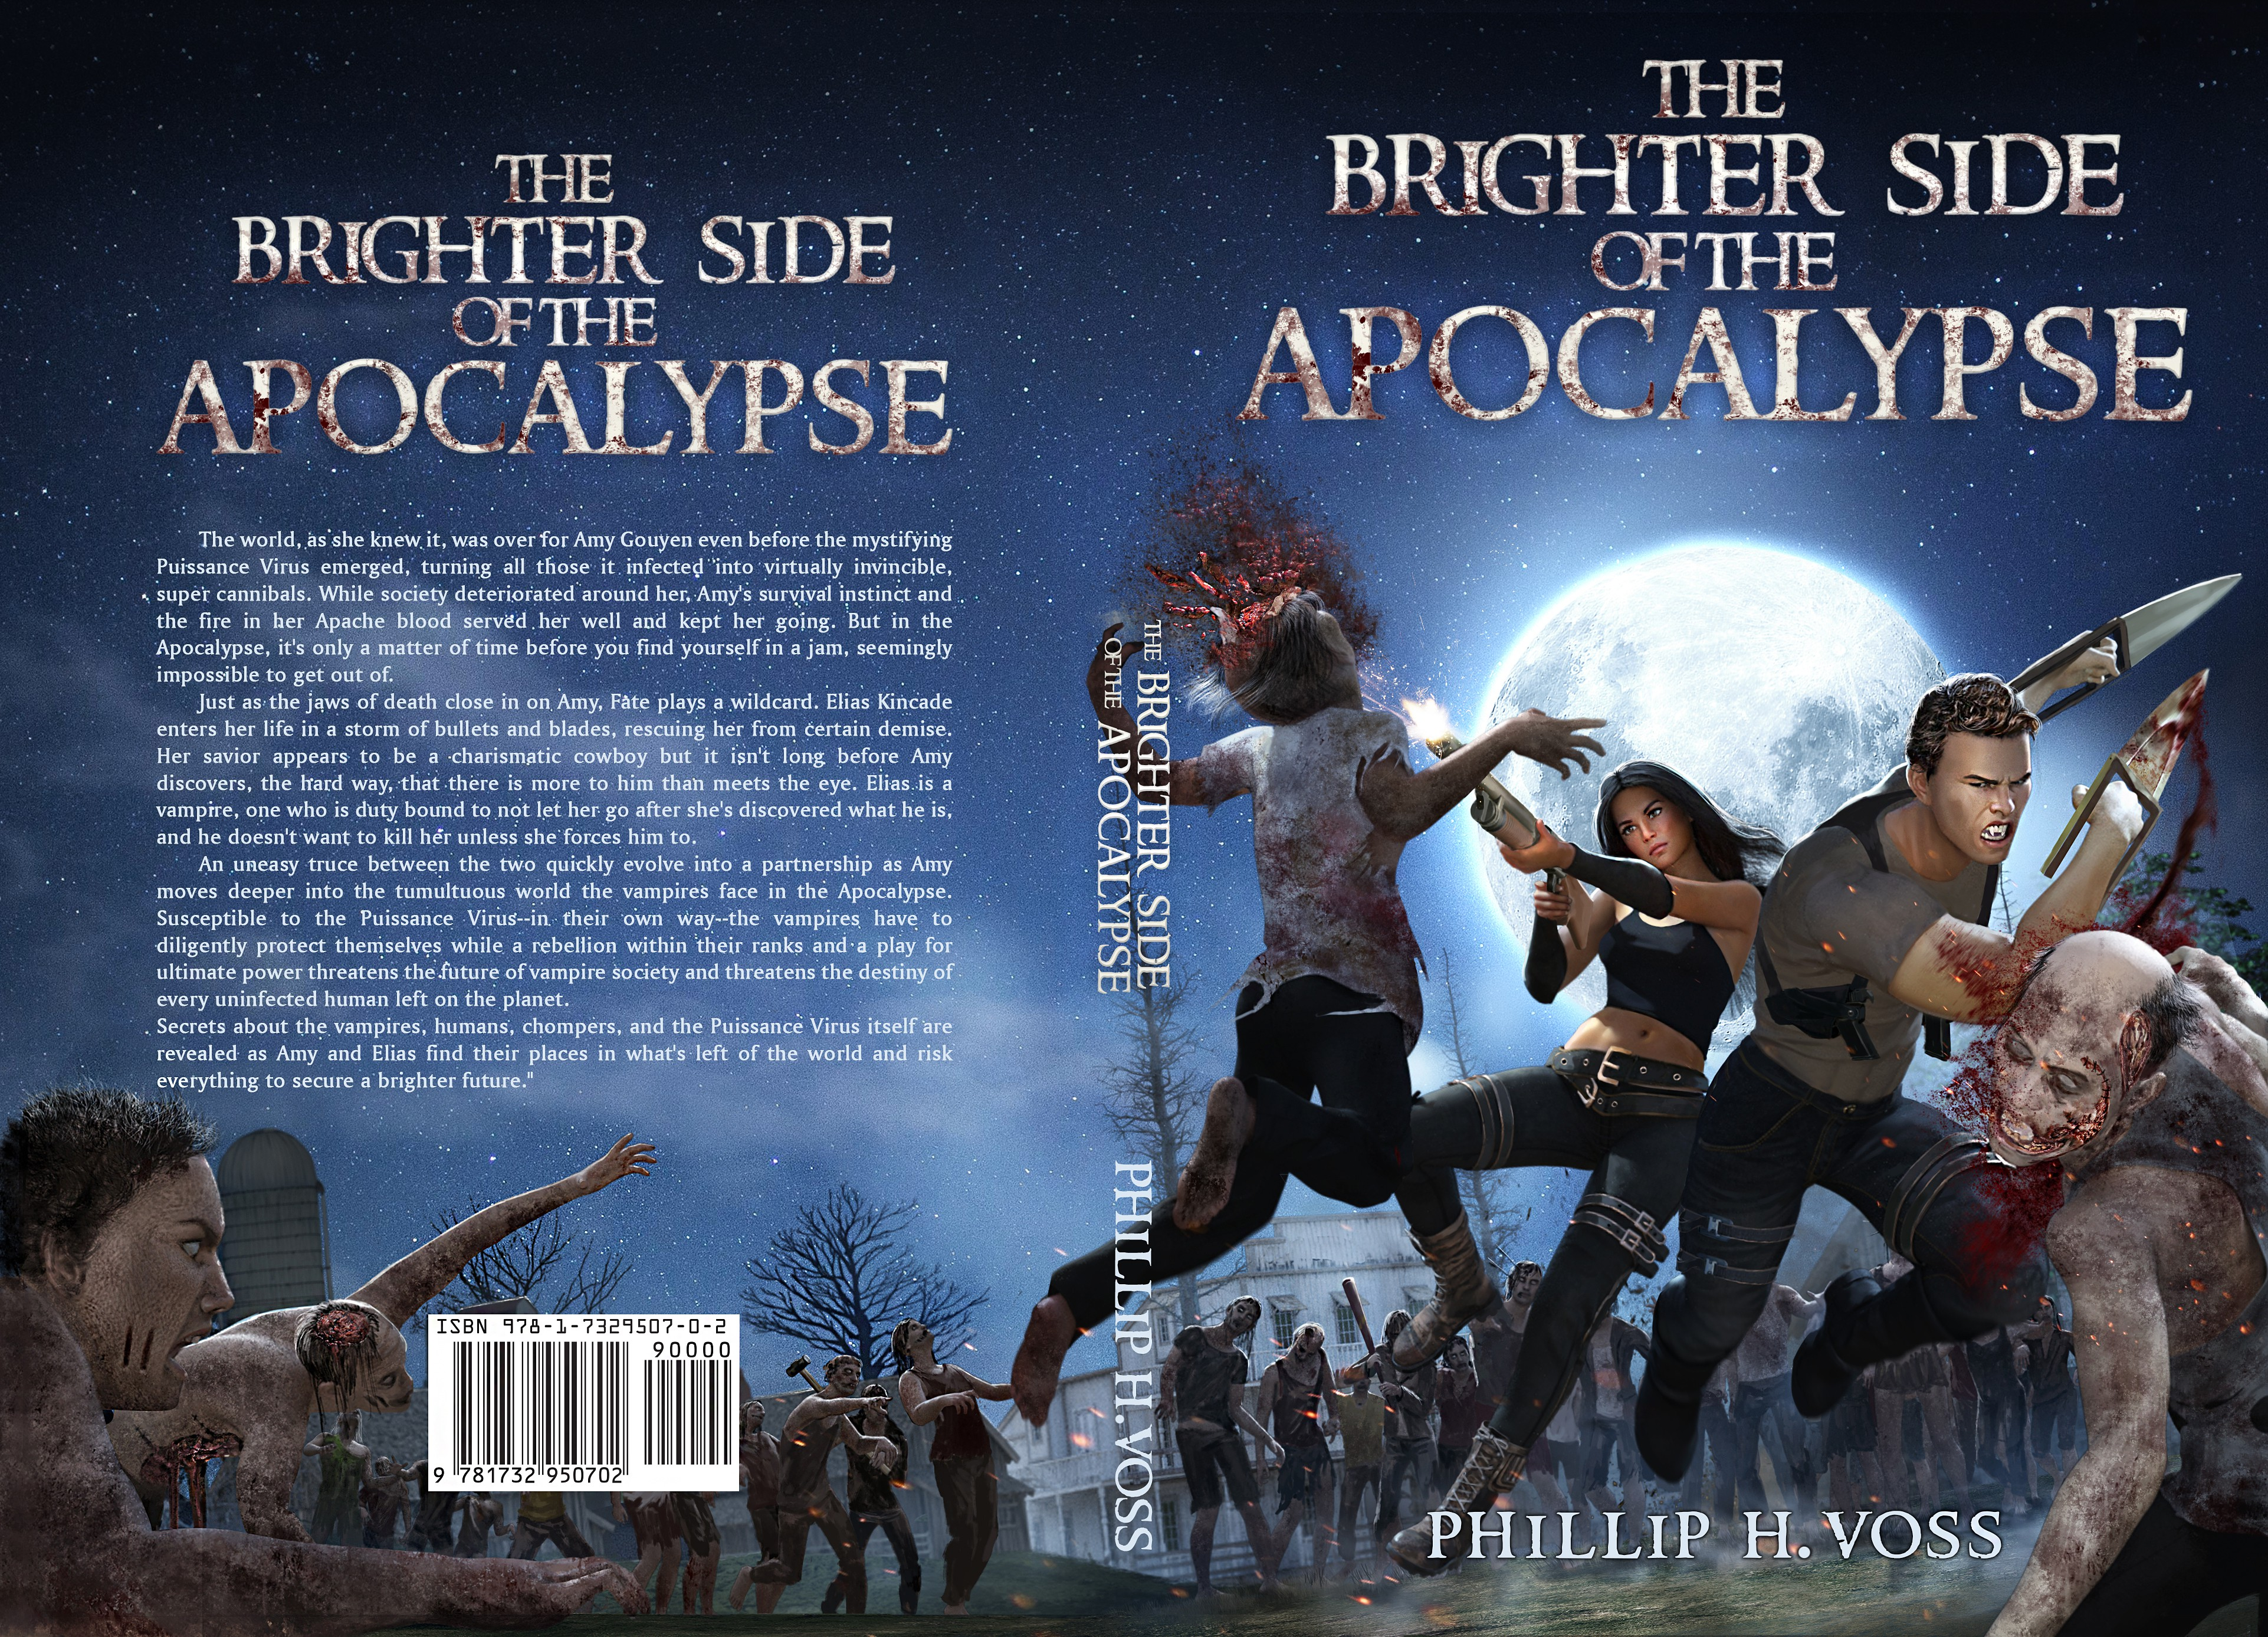 Book cover design for Vampire and Zombie filled world